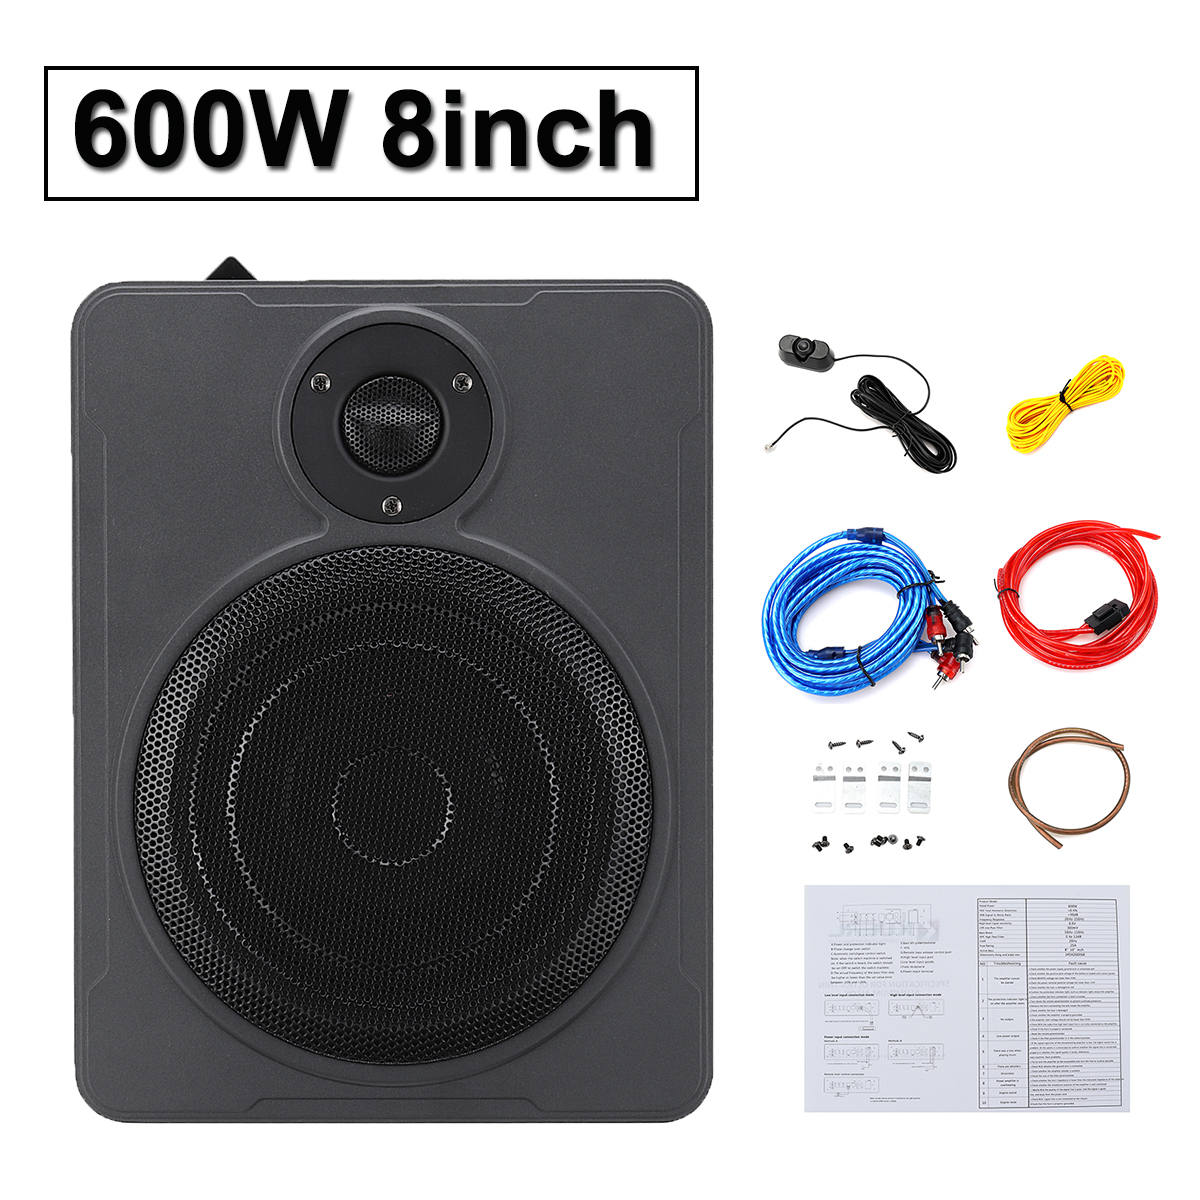 Subwoofer Speaker Music-System Car-Audio Under-Seat Bluetooth 600W 8inch Stereo Home